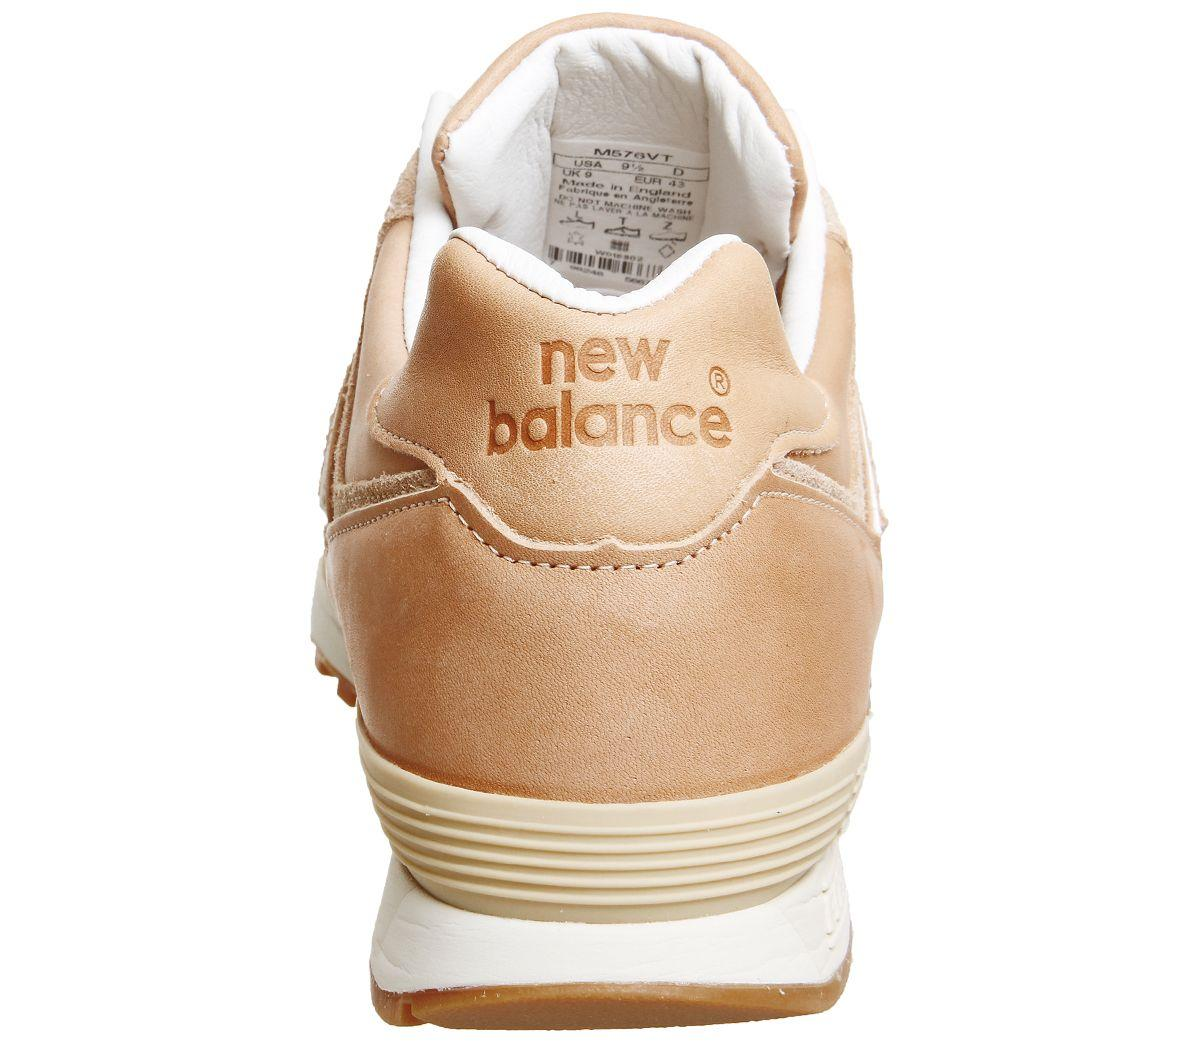 New Balance Leather 576 Trainers for